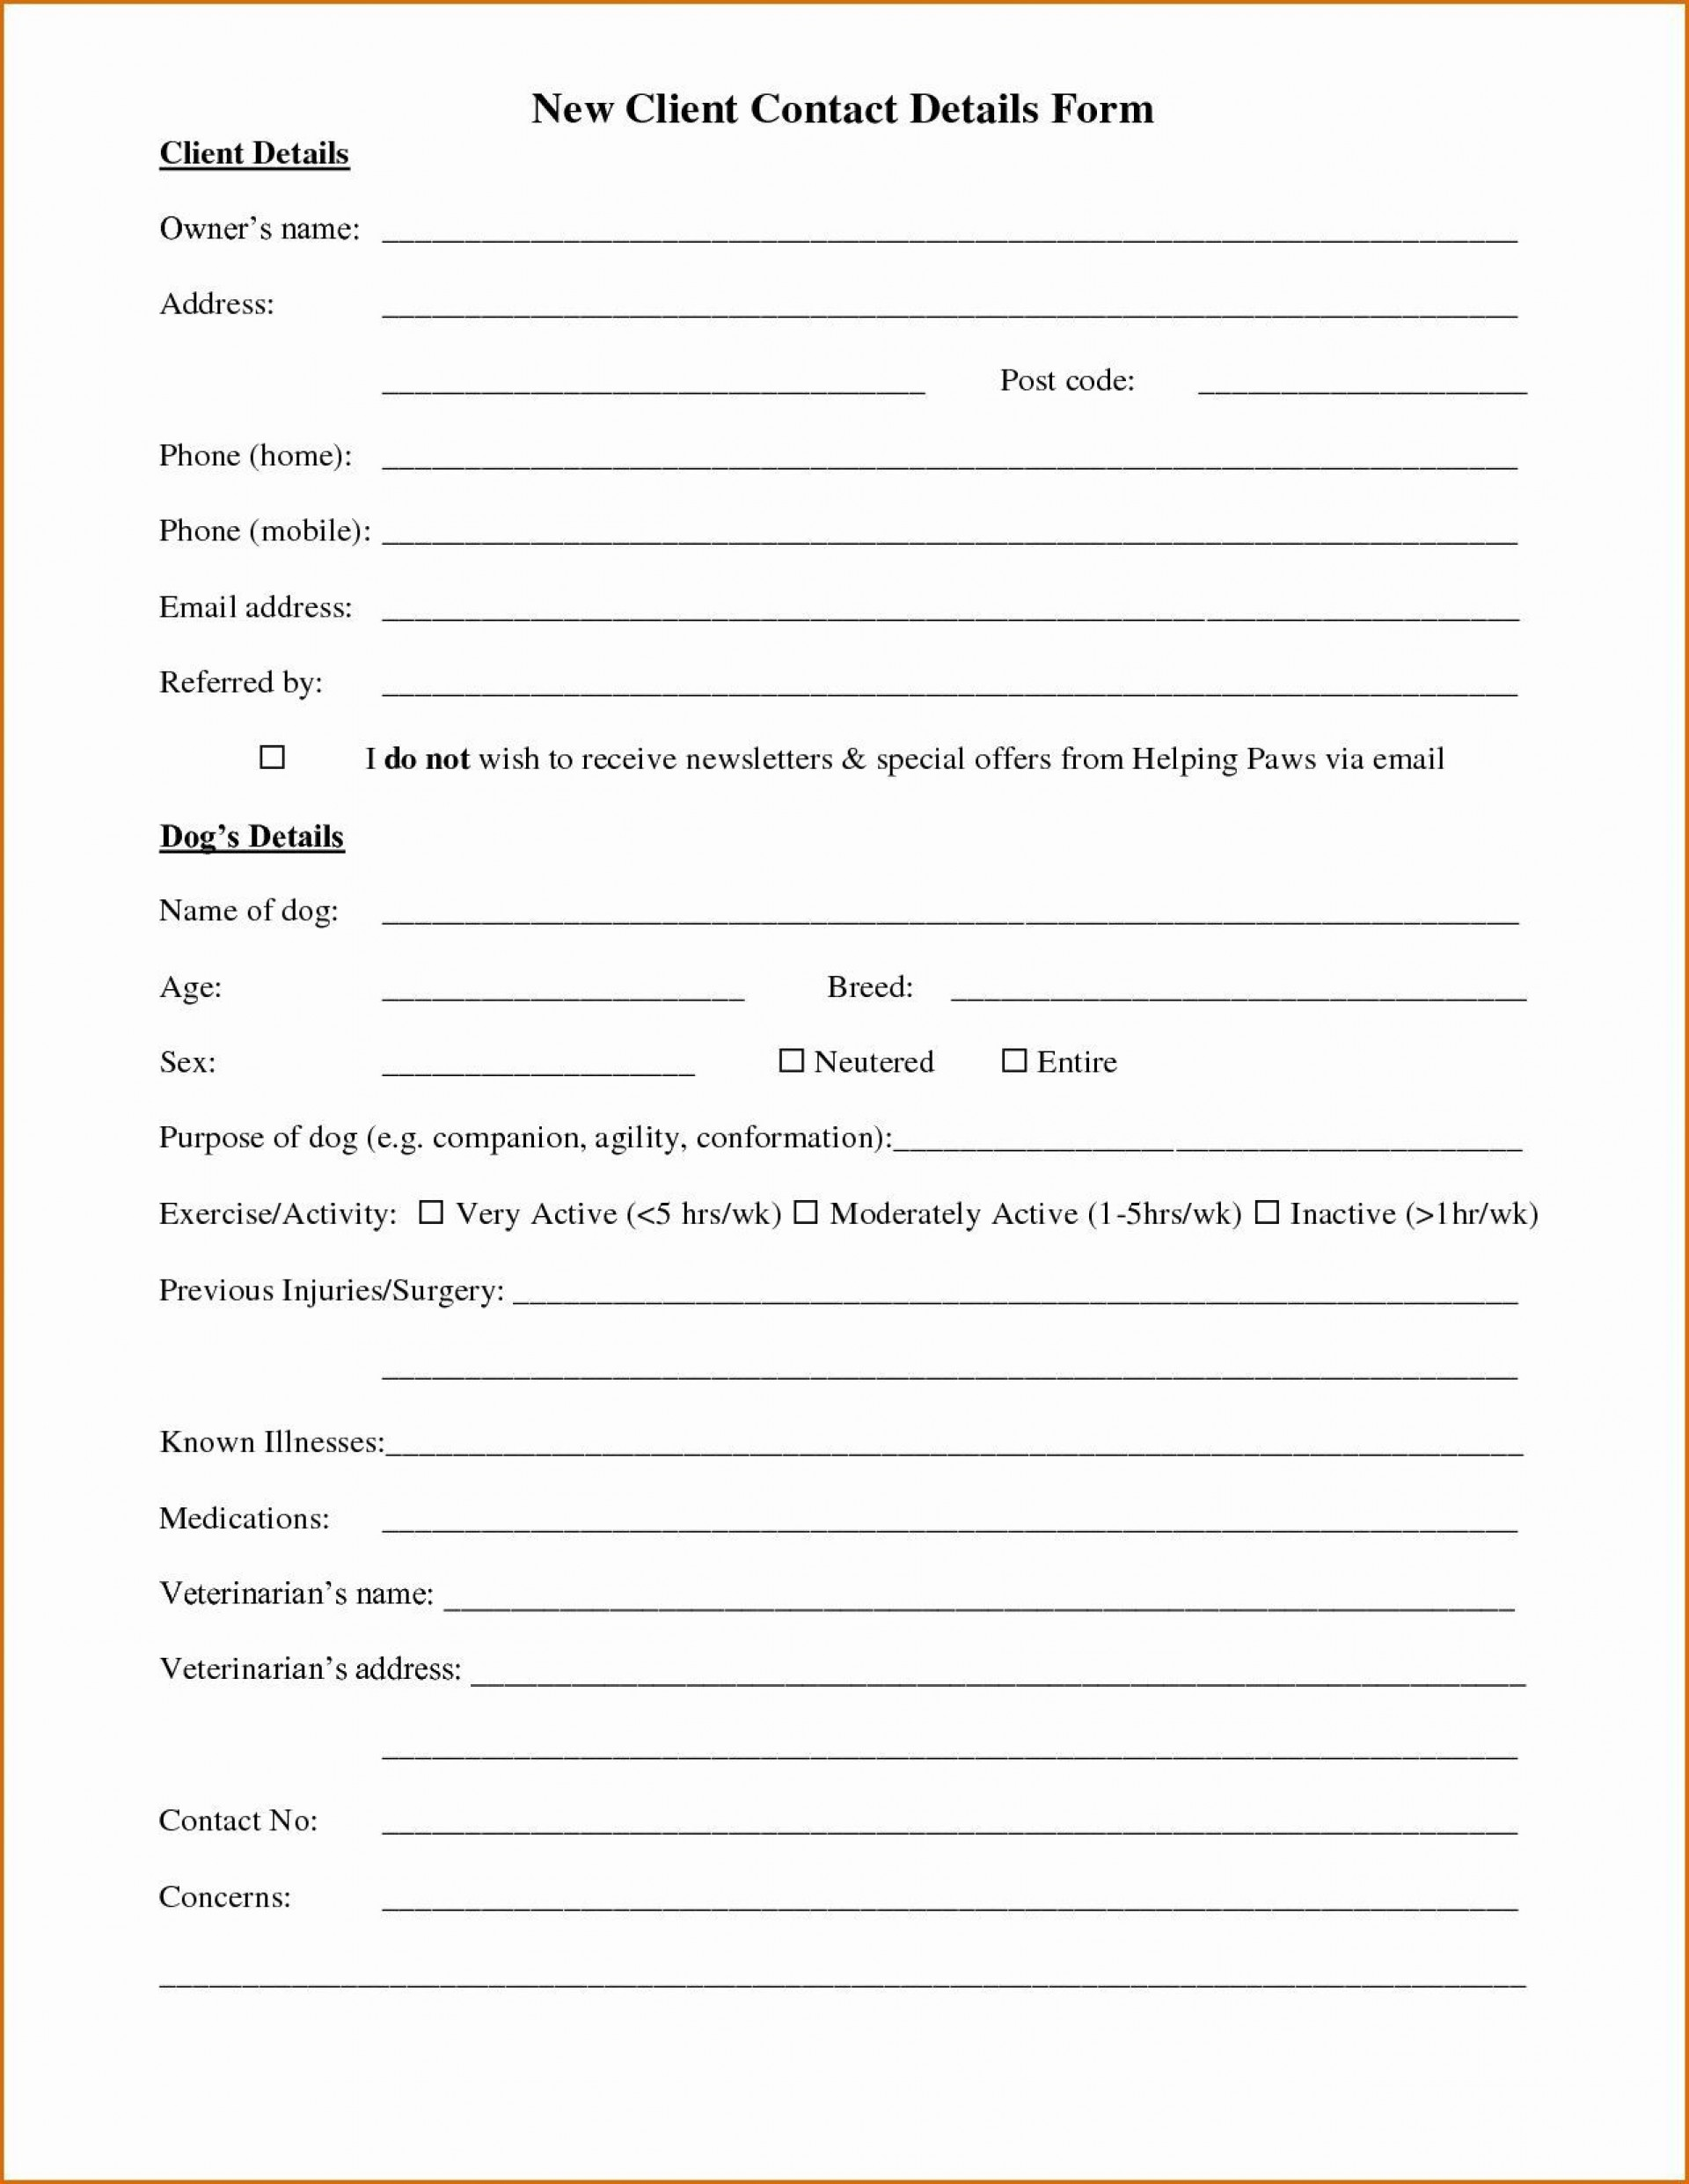 000 Incredible New Client Form Template Highest Clarity  Accounting Free Customer Pdf1920